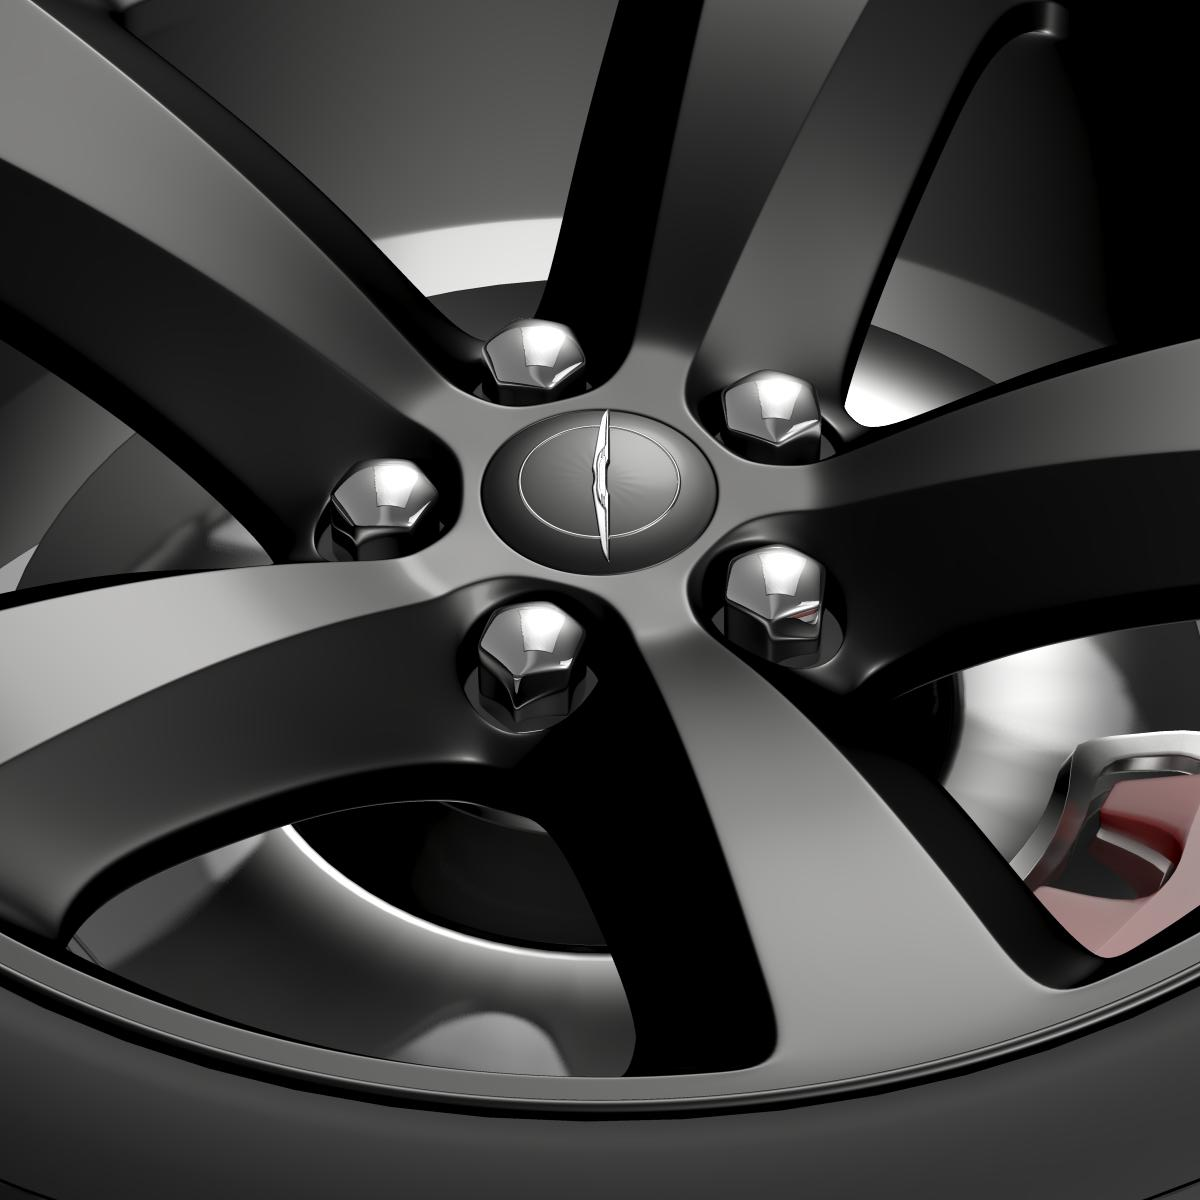 chrysler 300s wheel 3d model 3ds max fbx c4d lwo ma mb hrc xsi obj 210671